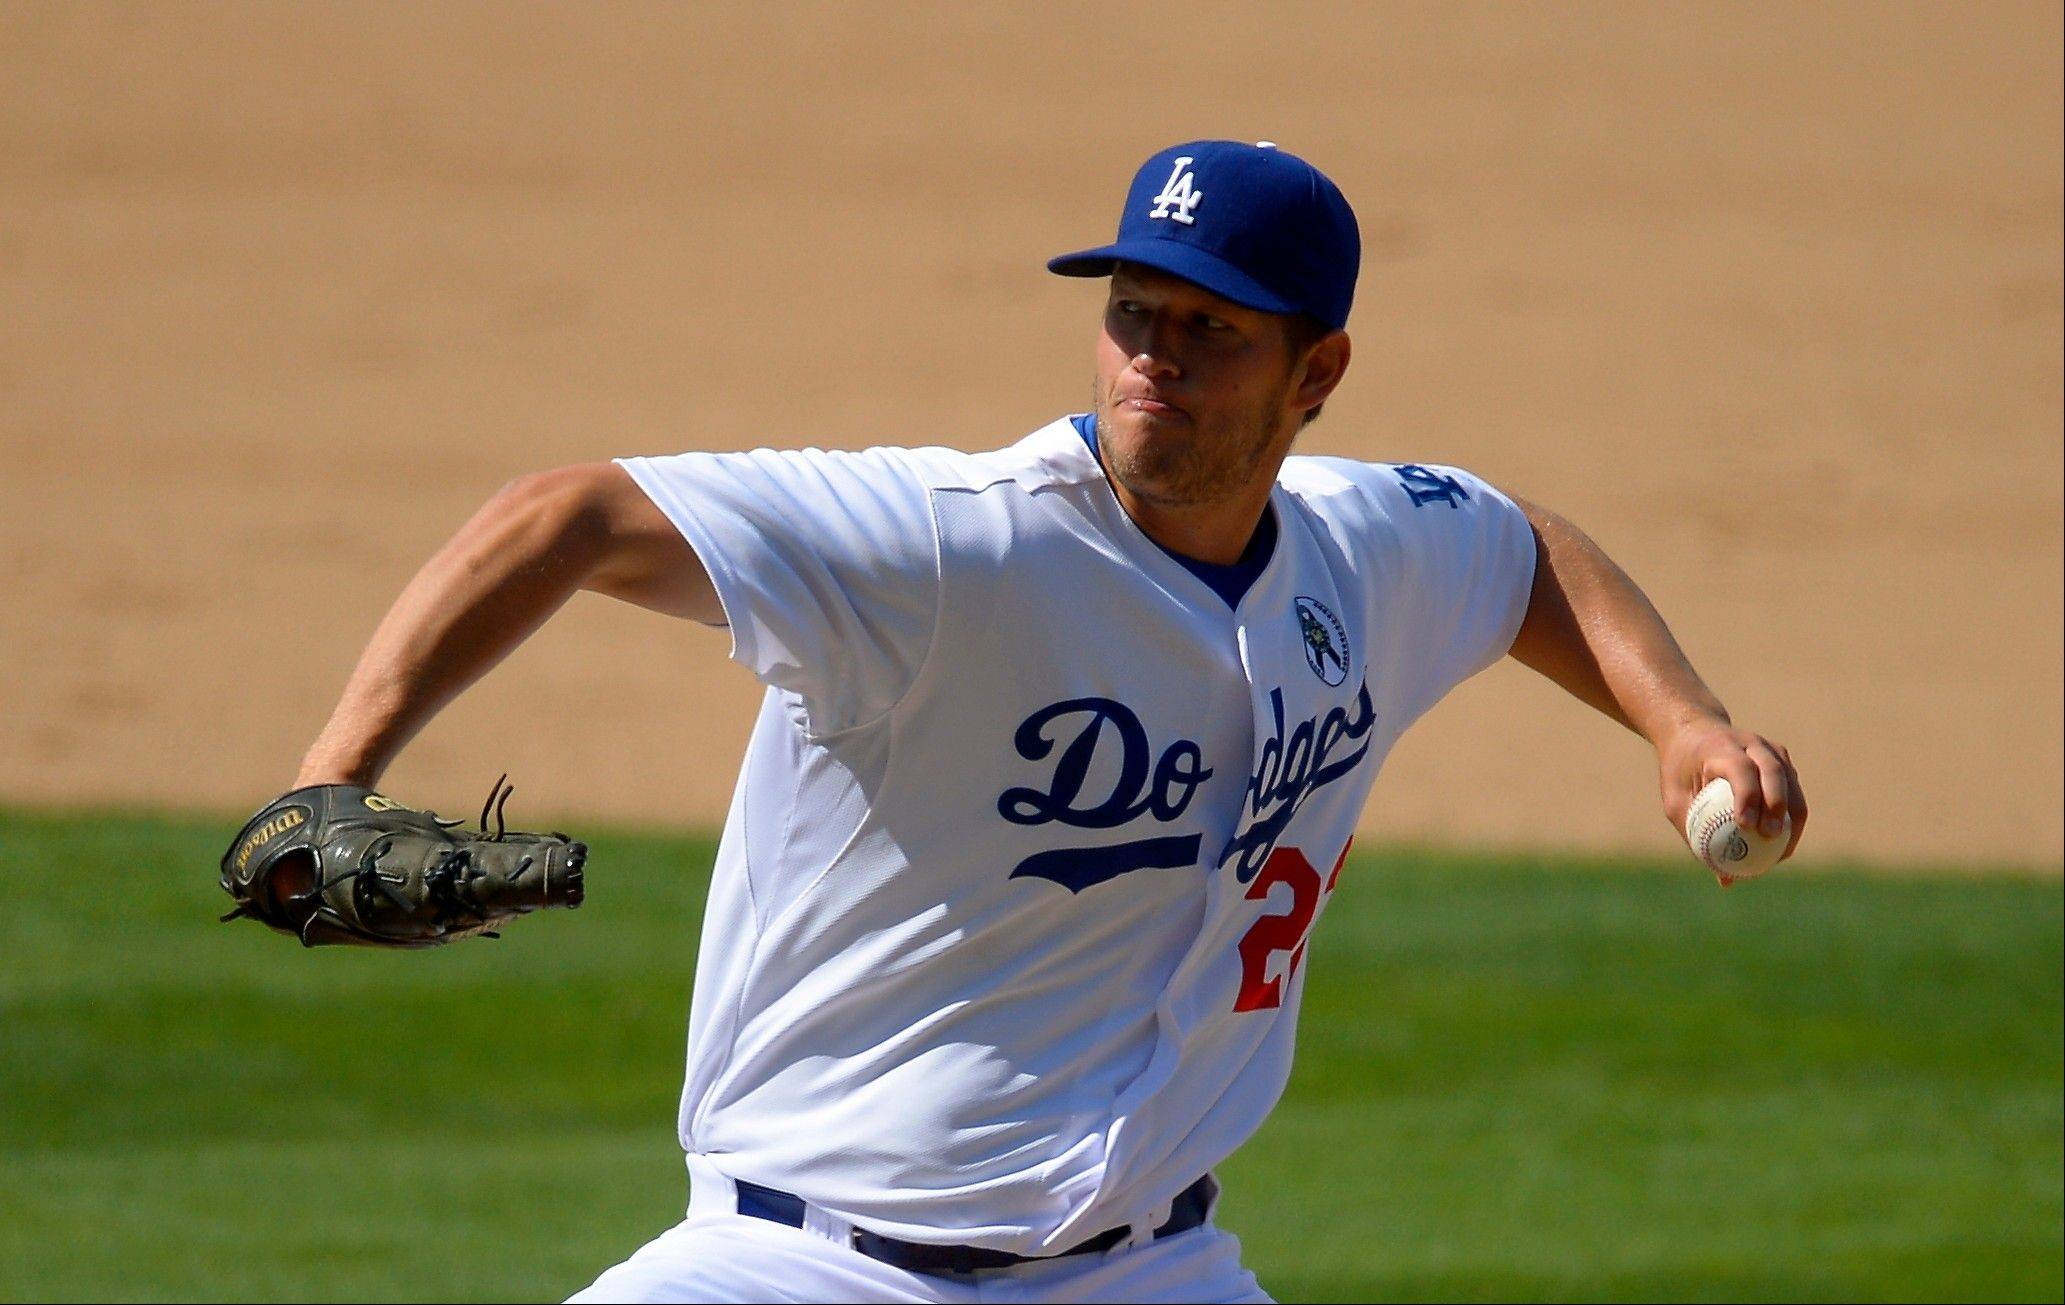 Dodgers starting pitcher Clayton Kershaw throws in the eighth inning Monday against the San Francisco Giants on Opening Day in Los Angeles.